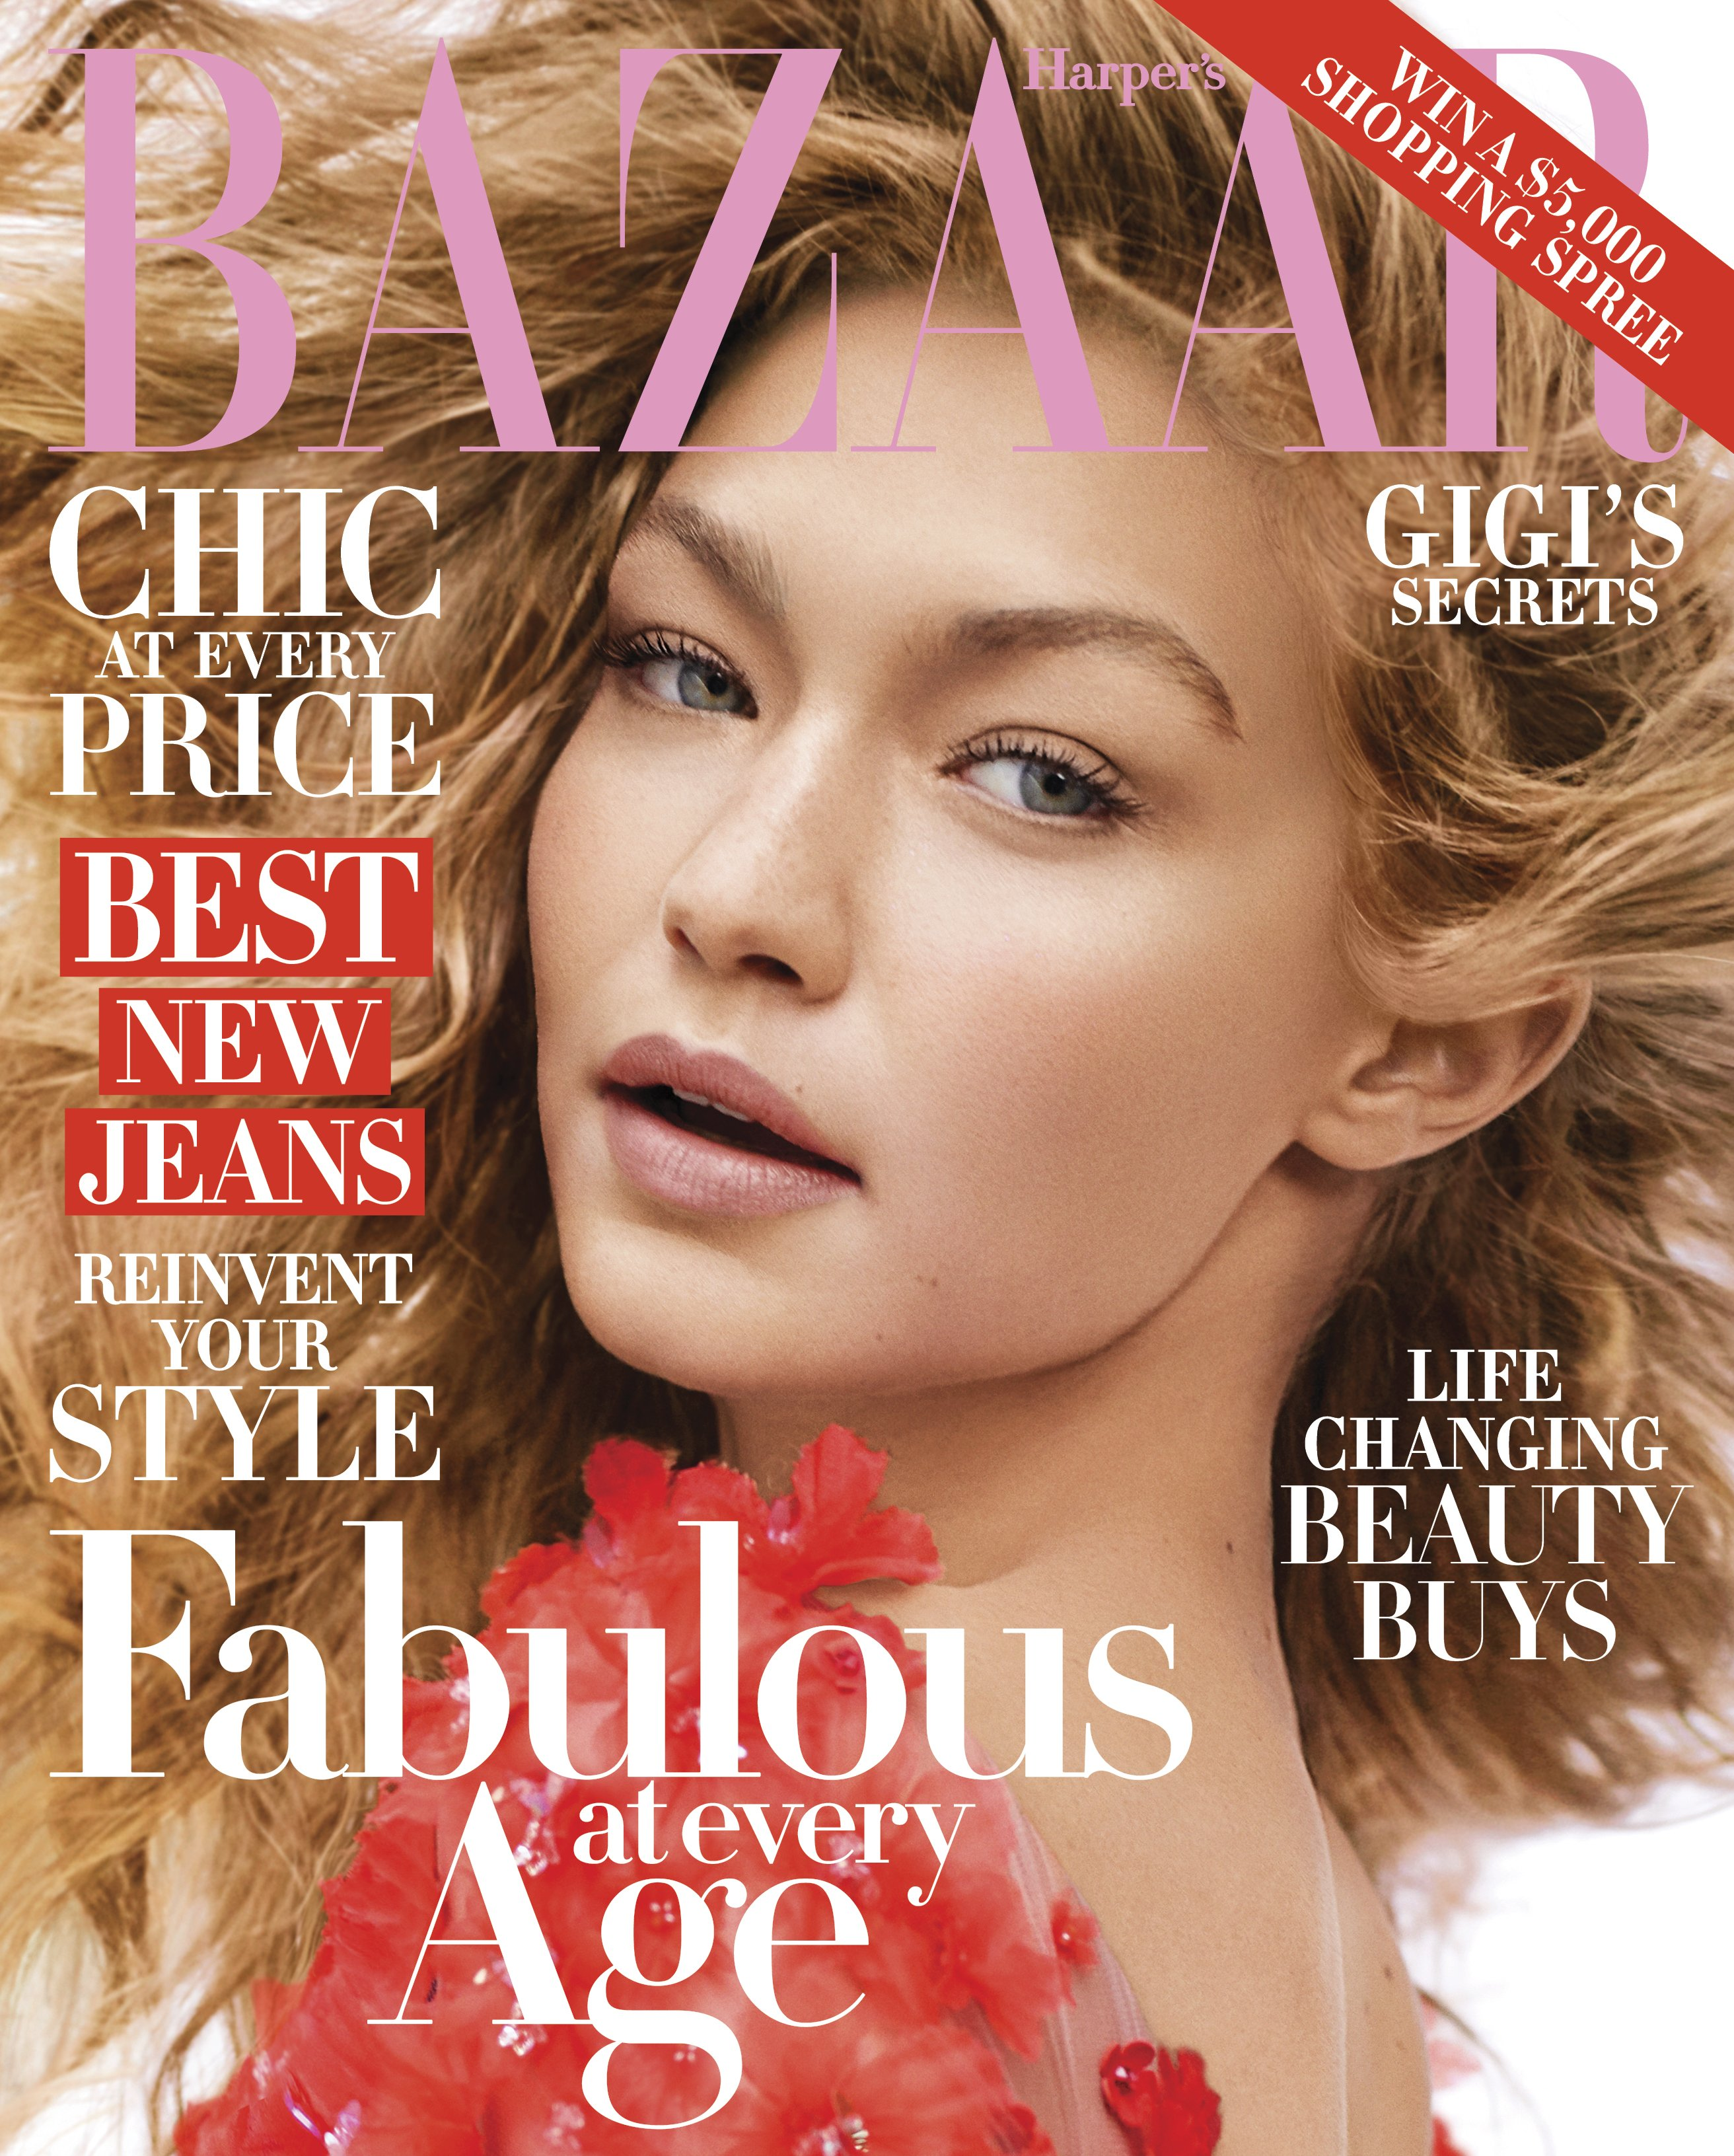 Gigi Hadid covers the October 2016 issue of Harper's Bazaar